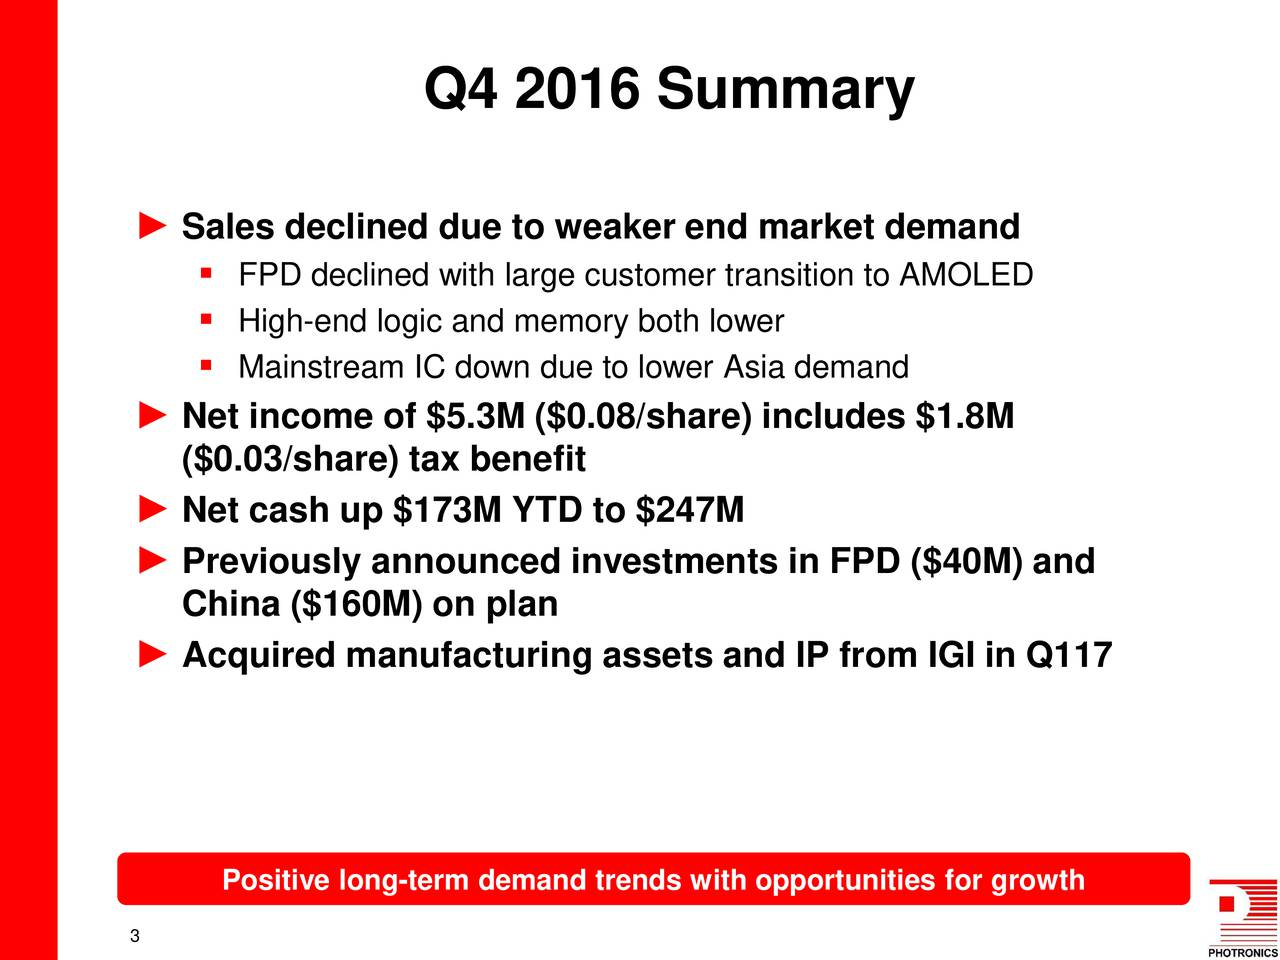 Sales declined due to weaker end market demand FPD declined with large customer transition to AMOLED High-end logic and memory both lower Mainstream IC down due to lower Asia demand Net income of $5.3M ($0.08/share) includes $1.8M ($0.03/share) tax benefit Net cash up $173M YTD to $247M Previously announced investments in FPD ($40M) and China ($160M) on plan Acquired manufacturing assets and IP from IGI in Q117 Positive long-term demand trends with opportunities for growth 3